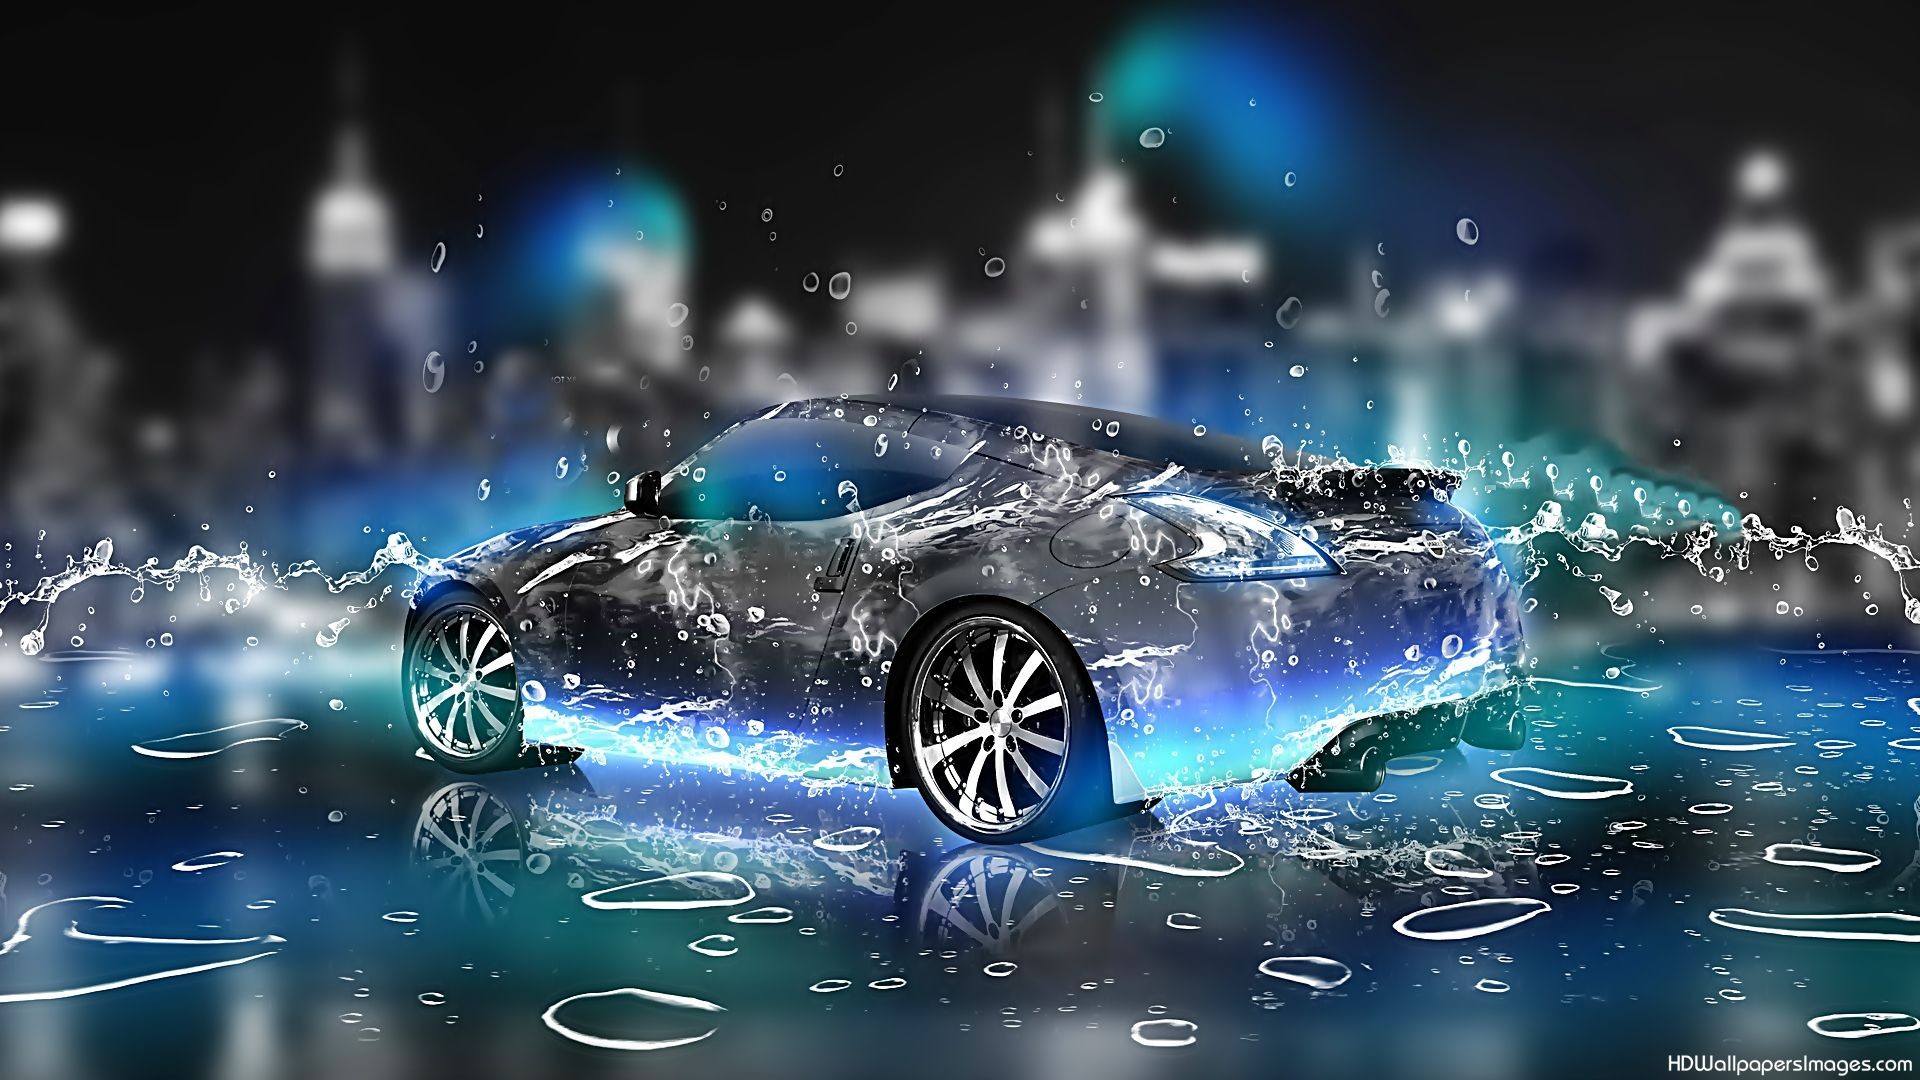 Cool amoled wallpapers quotes wallpapers dope wallpapers so, i think you will get a good amount of wallpapers daily and my promise all wallpapers are in 4k & Full Hd Cars Wallpaper Car Wallpapers Hd Wallpapers Quotes Image Com